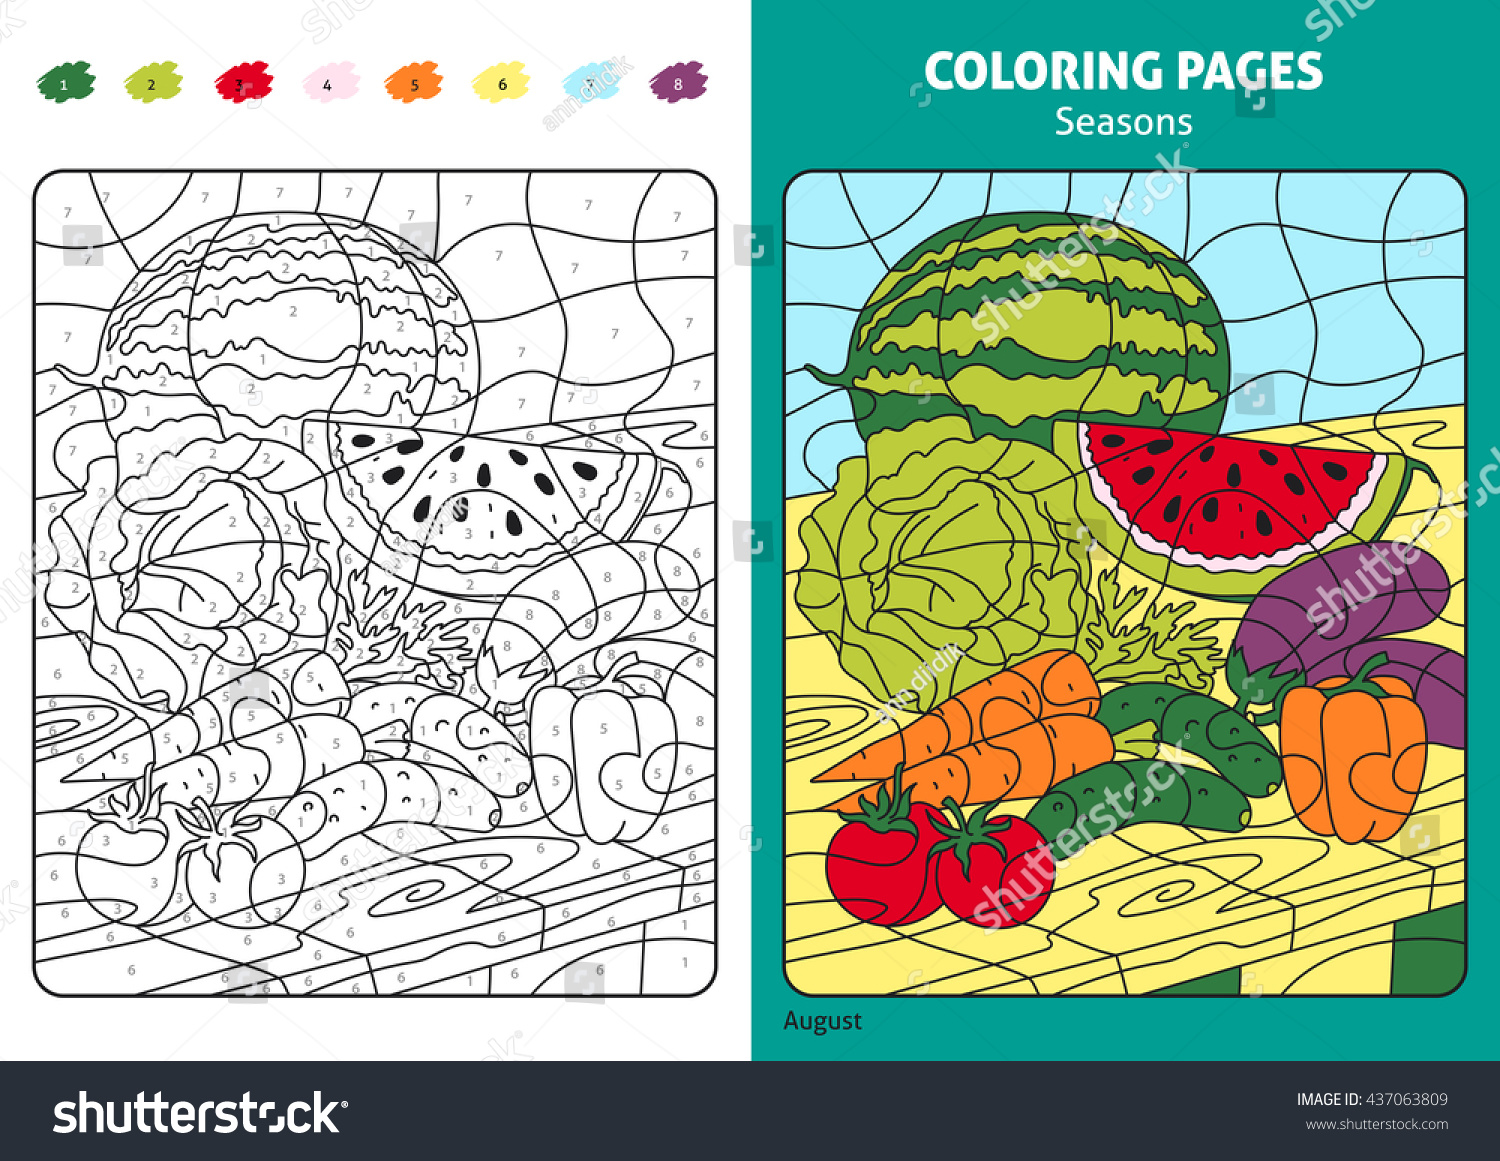 Seasons Coloring Page Kids August Month Stock Photo (Photo, Vector ...